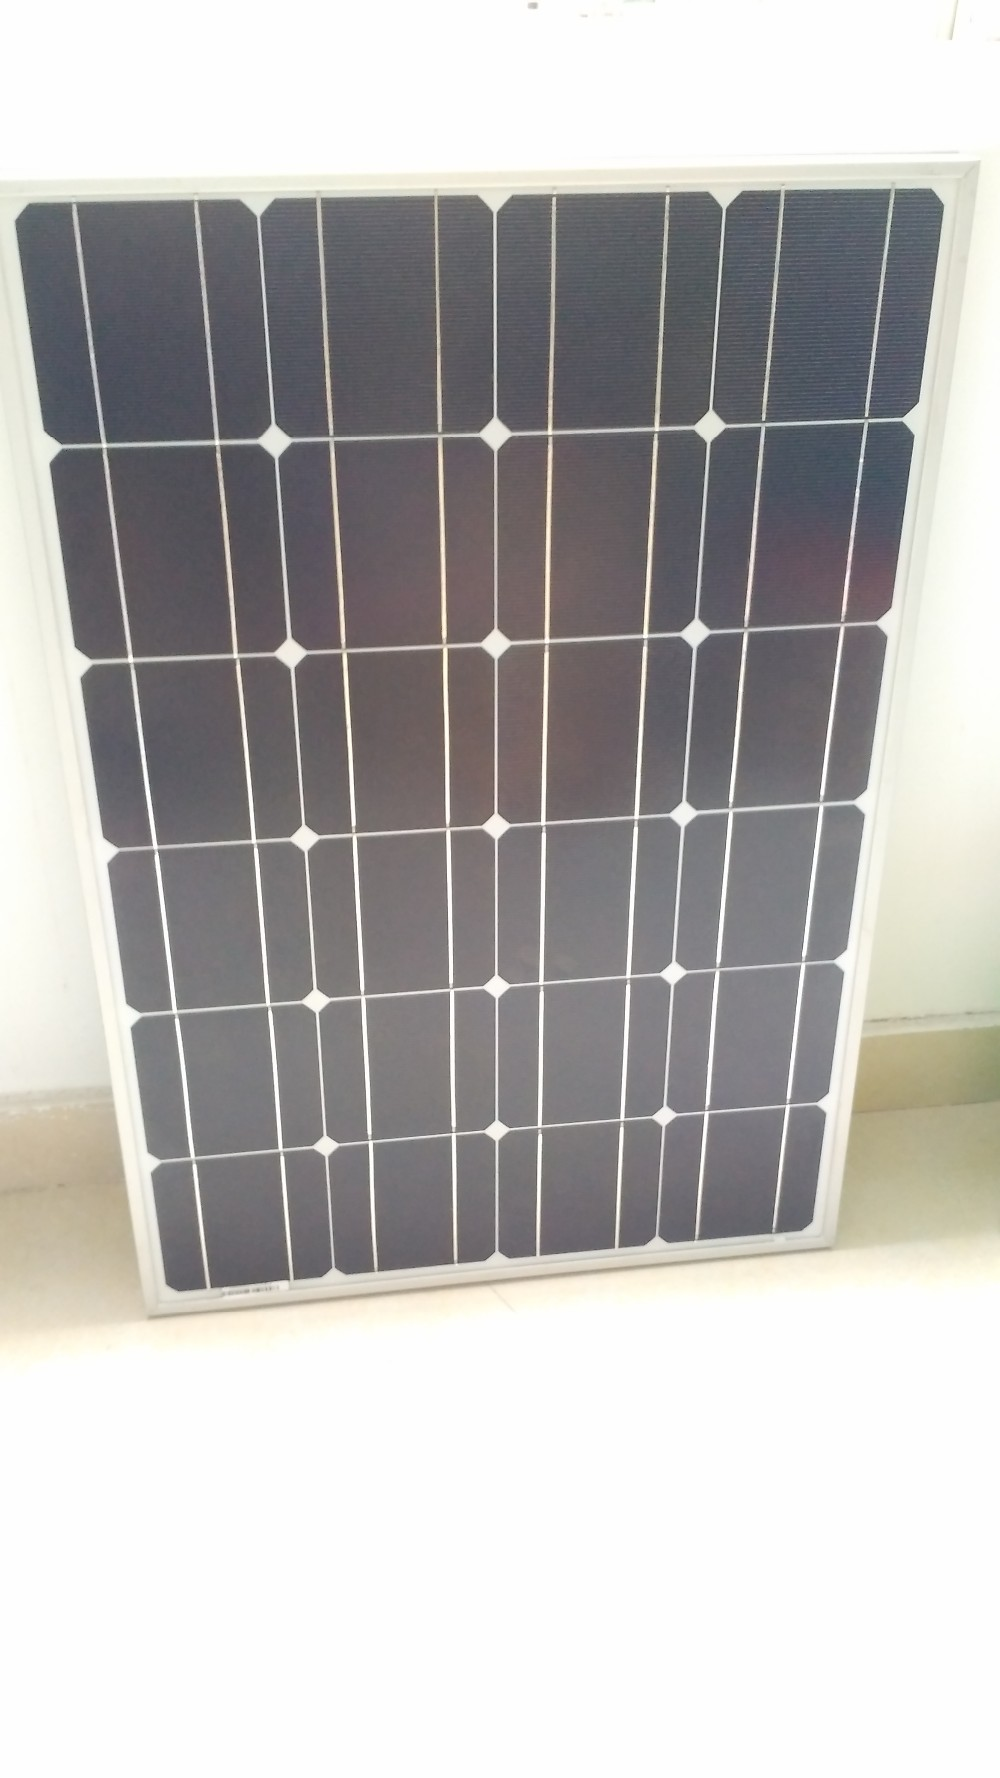 50 watt solar panel 50w monocrystalline pv module container from China